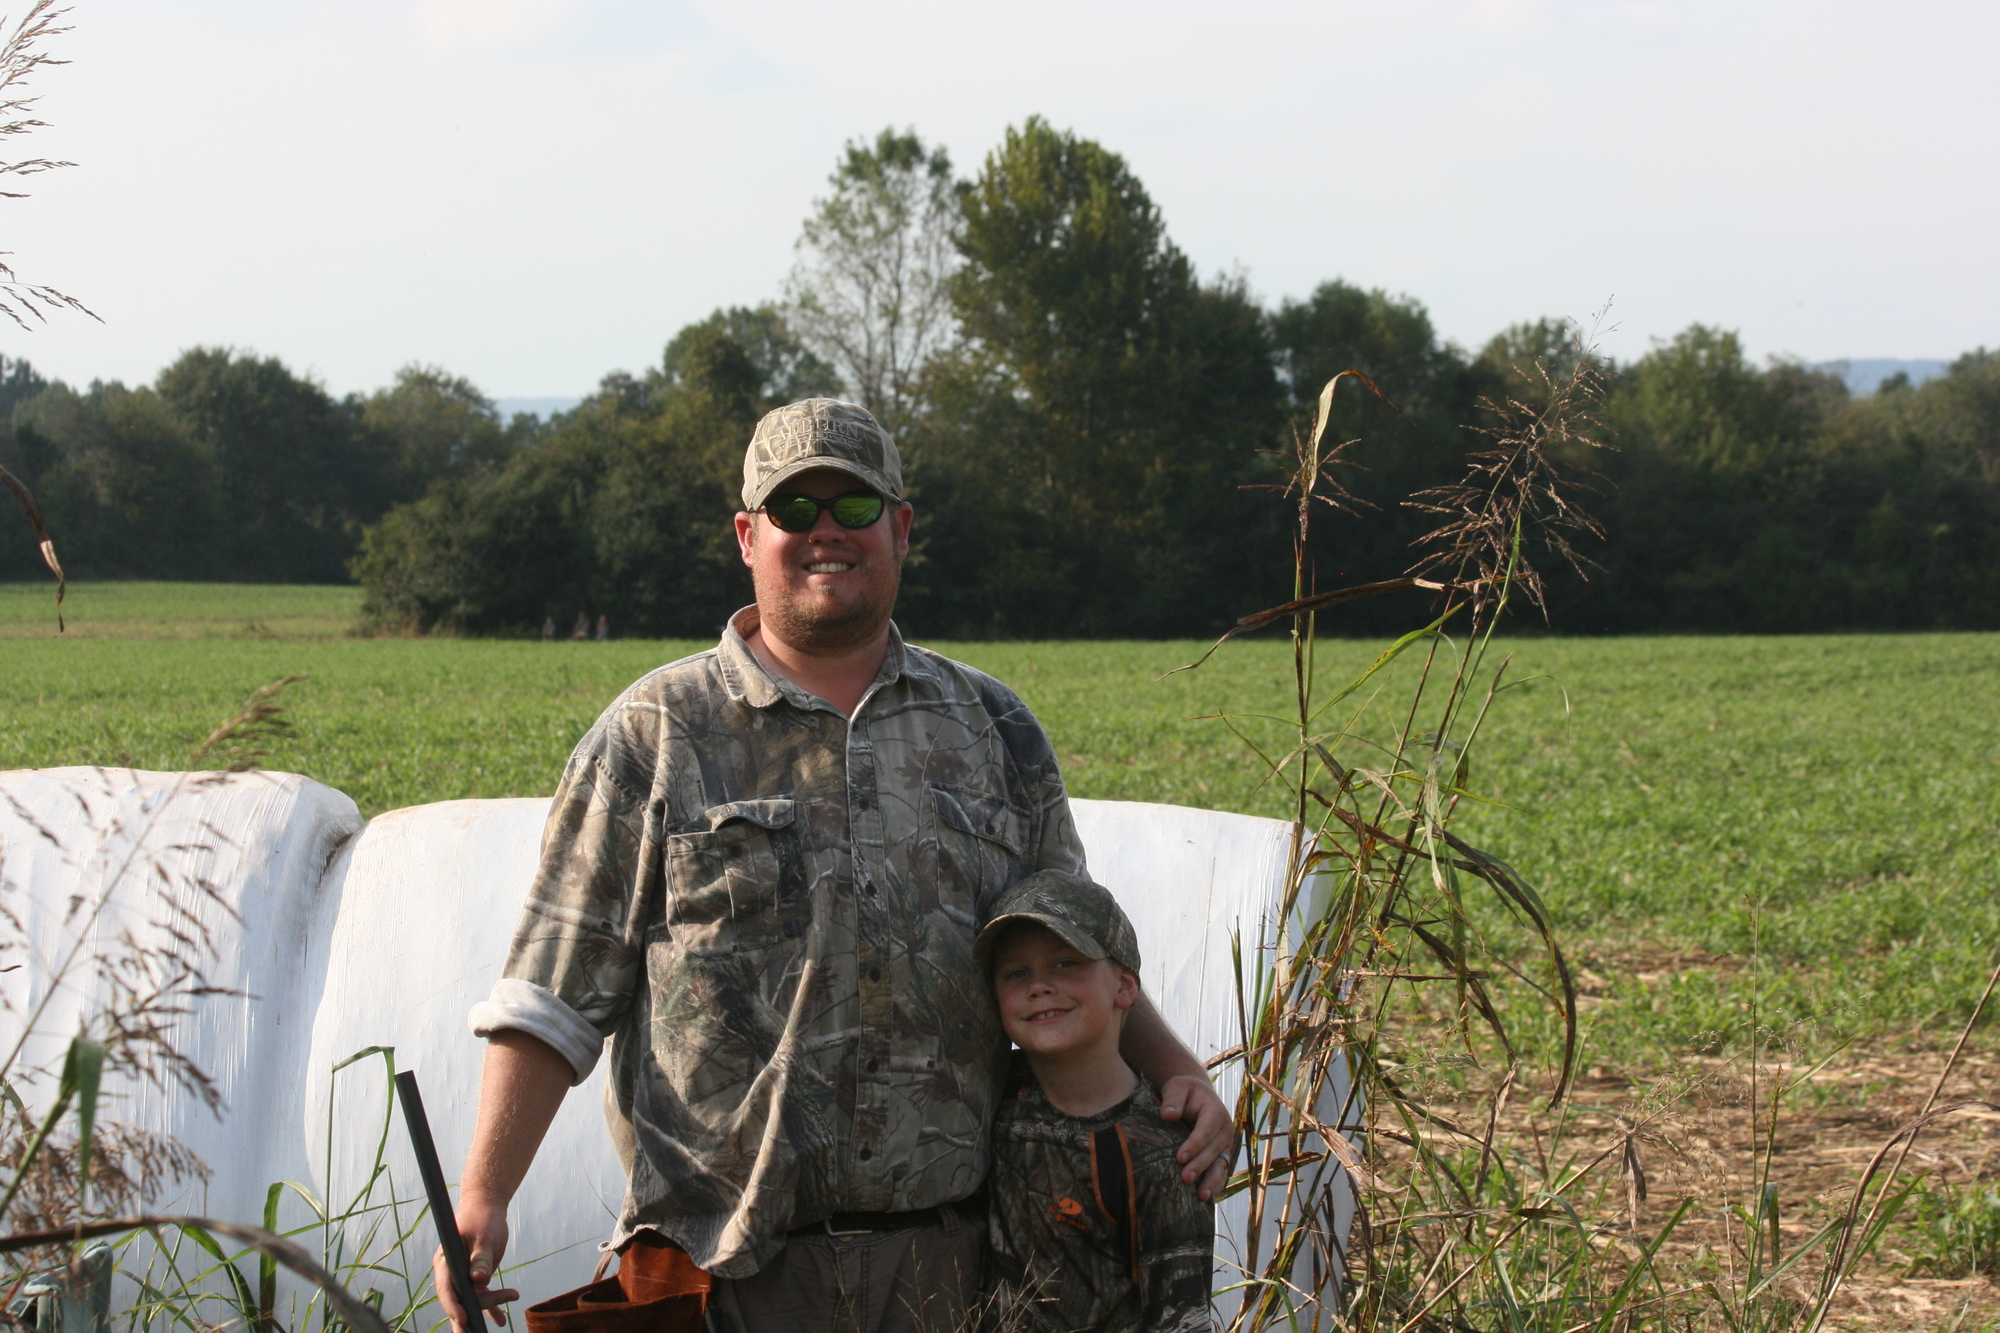 Josh Burnette with his son Logan (age 7) at a Youth Dove Hunt in Jackson County, Alabama.